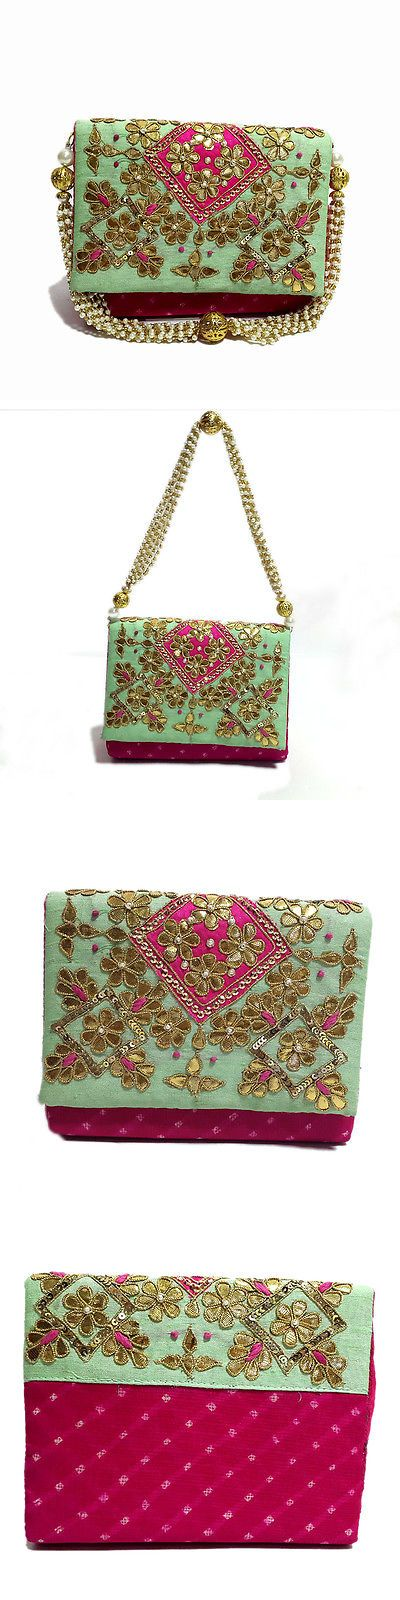 Bridal Handbags And Bags: Women Girl Pink And Green Handcrafted Party Wedding Handmade Clutch Purse Bag -> BUY IT NOW ONLY: $31.5 on eBay!